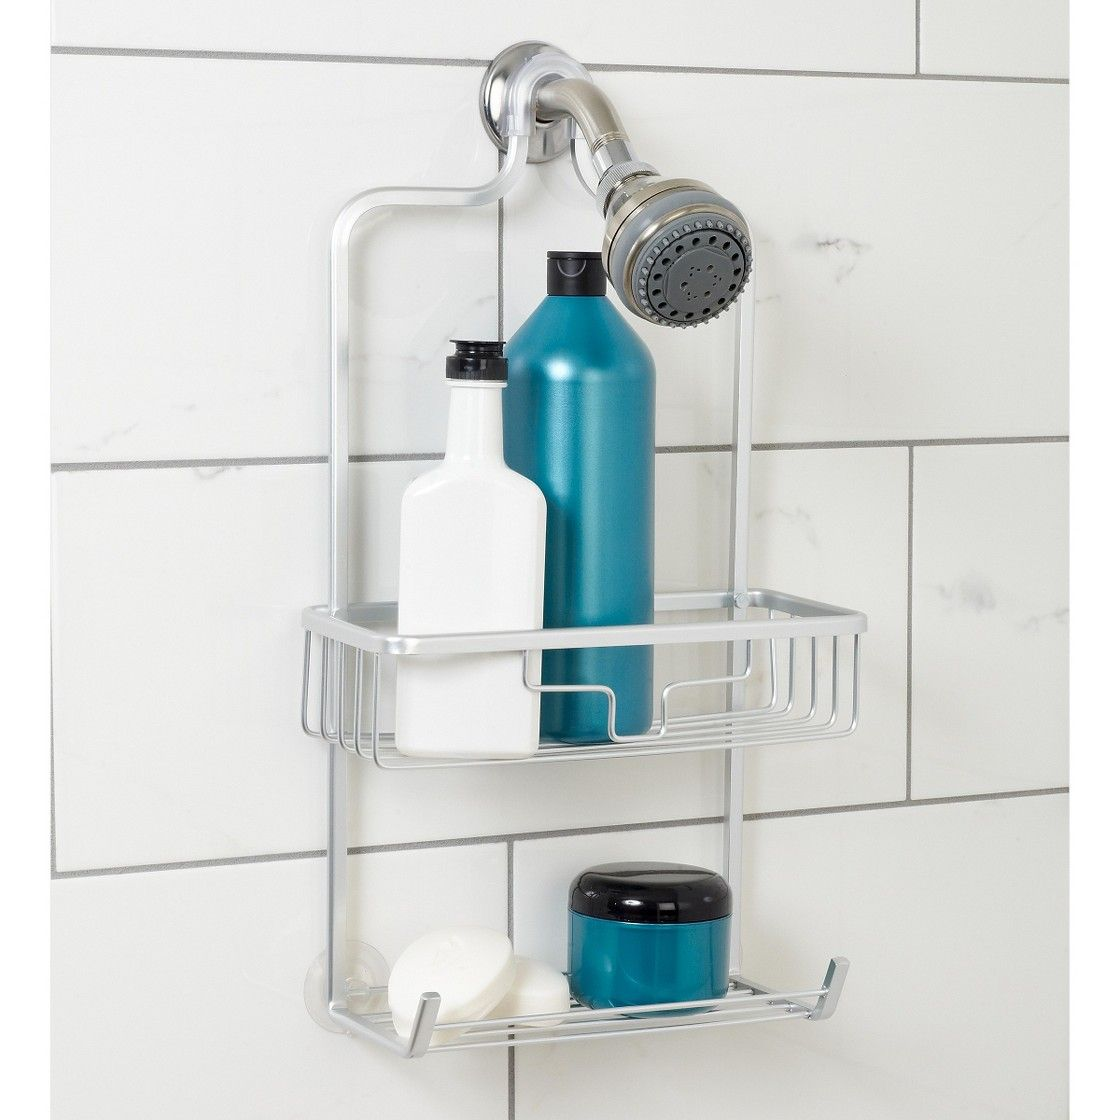 NeverRust Aluminum Shower Caddy Satin Medium Zenna Home